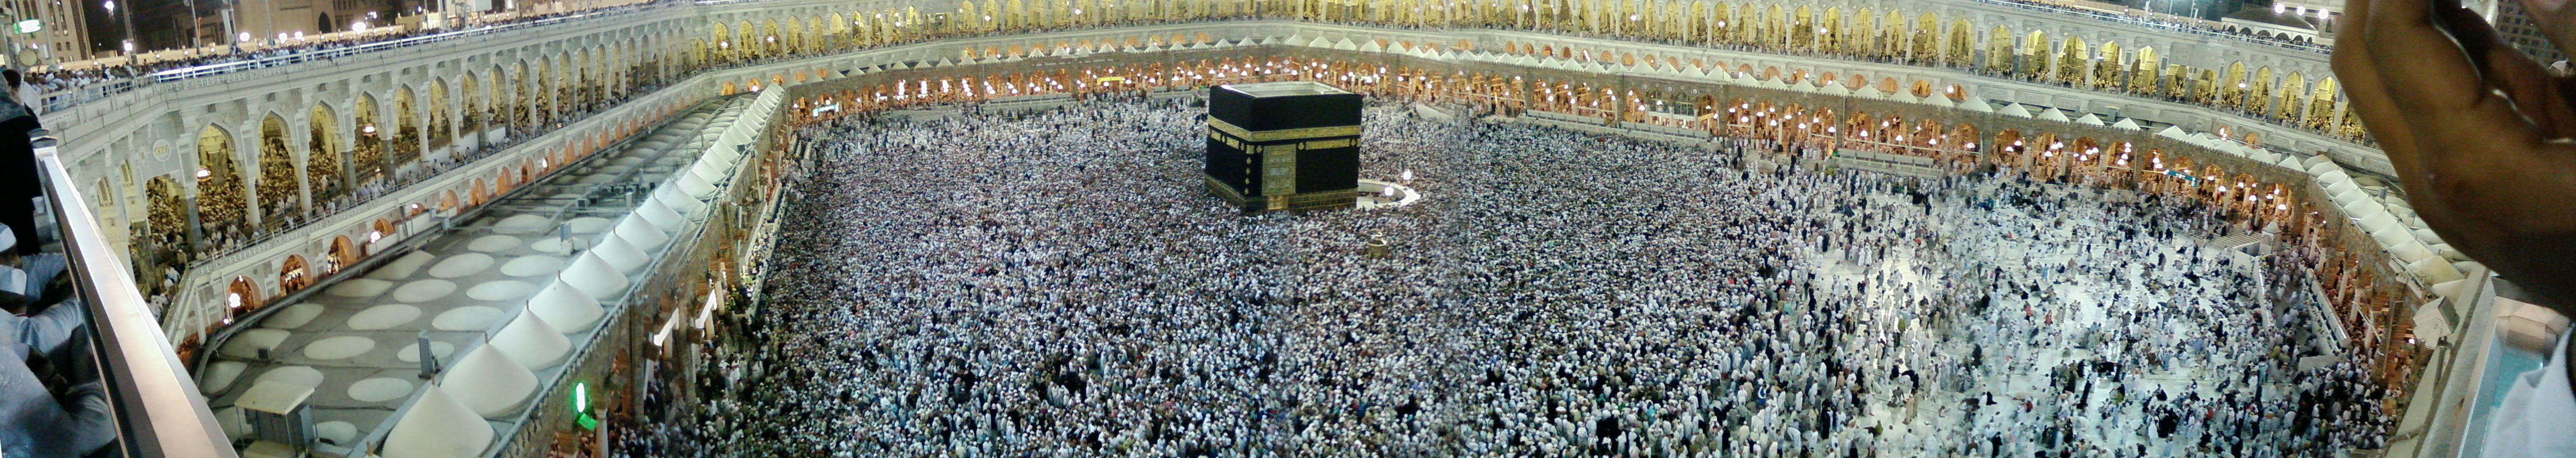 Panorama of Masjid al-Haram on Mecca, Saudi Arabia. Photo taken on December 22, 2007.